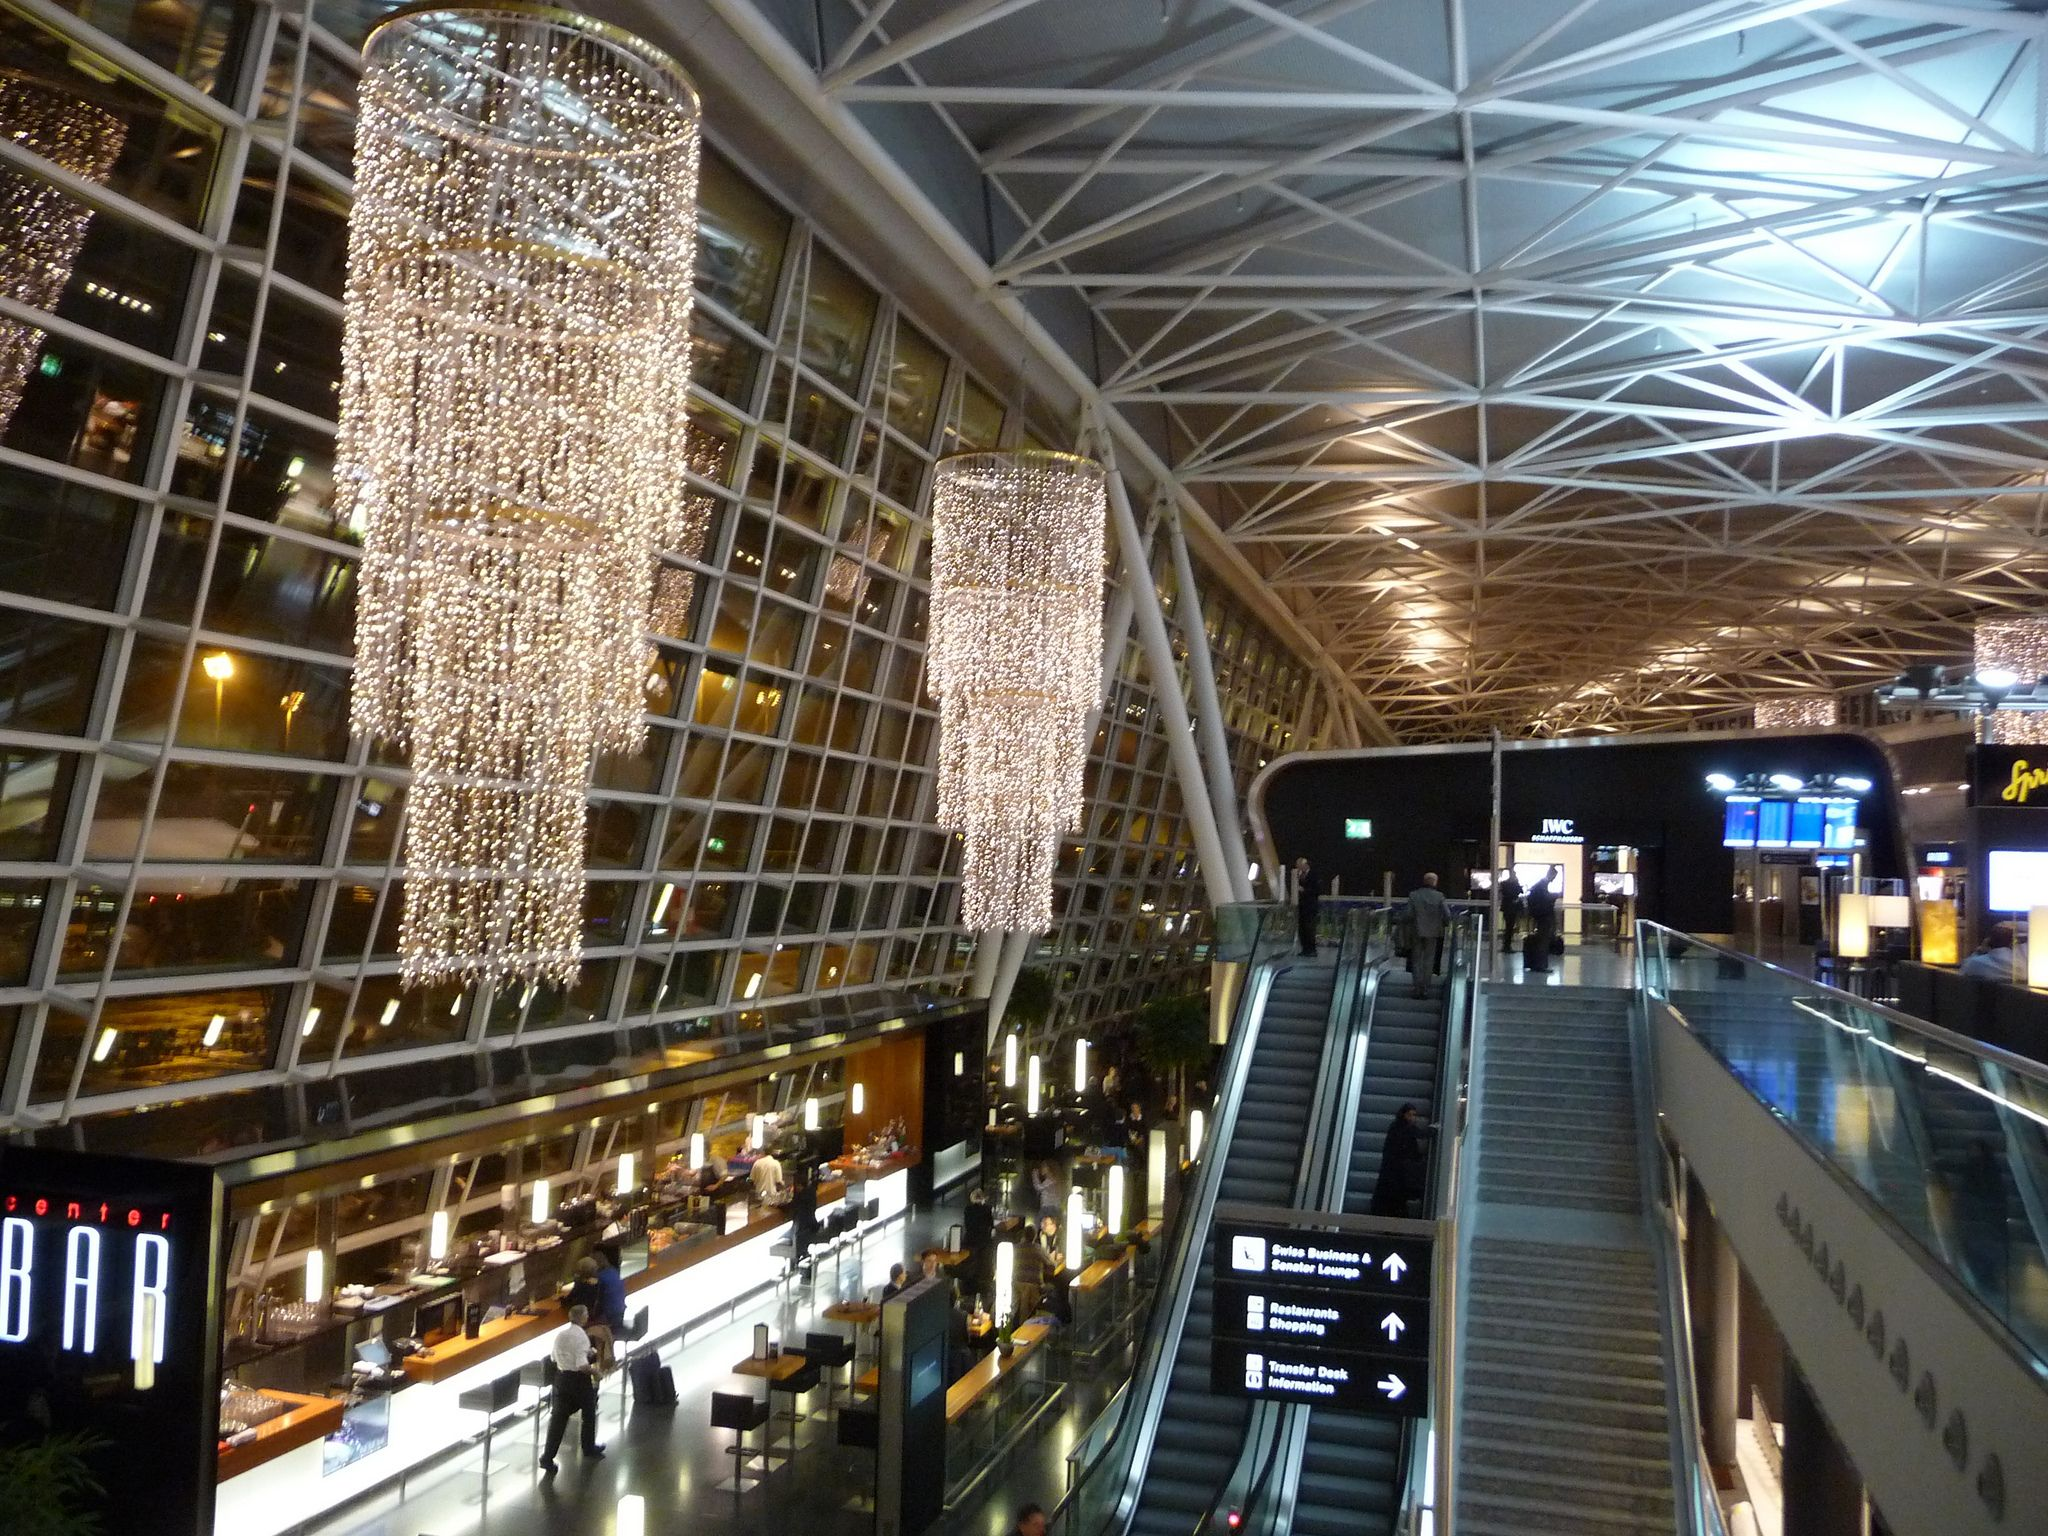 Zurich airport z rich flughafen kloten switzerland for Interior decoration zurich